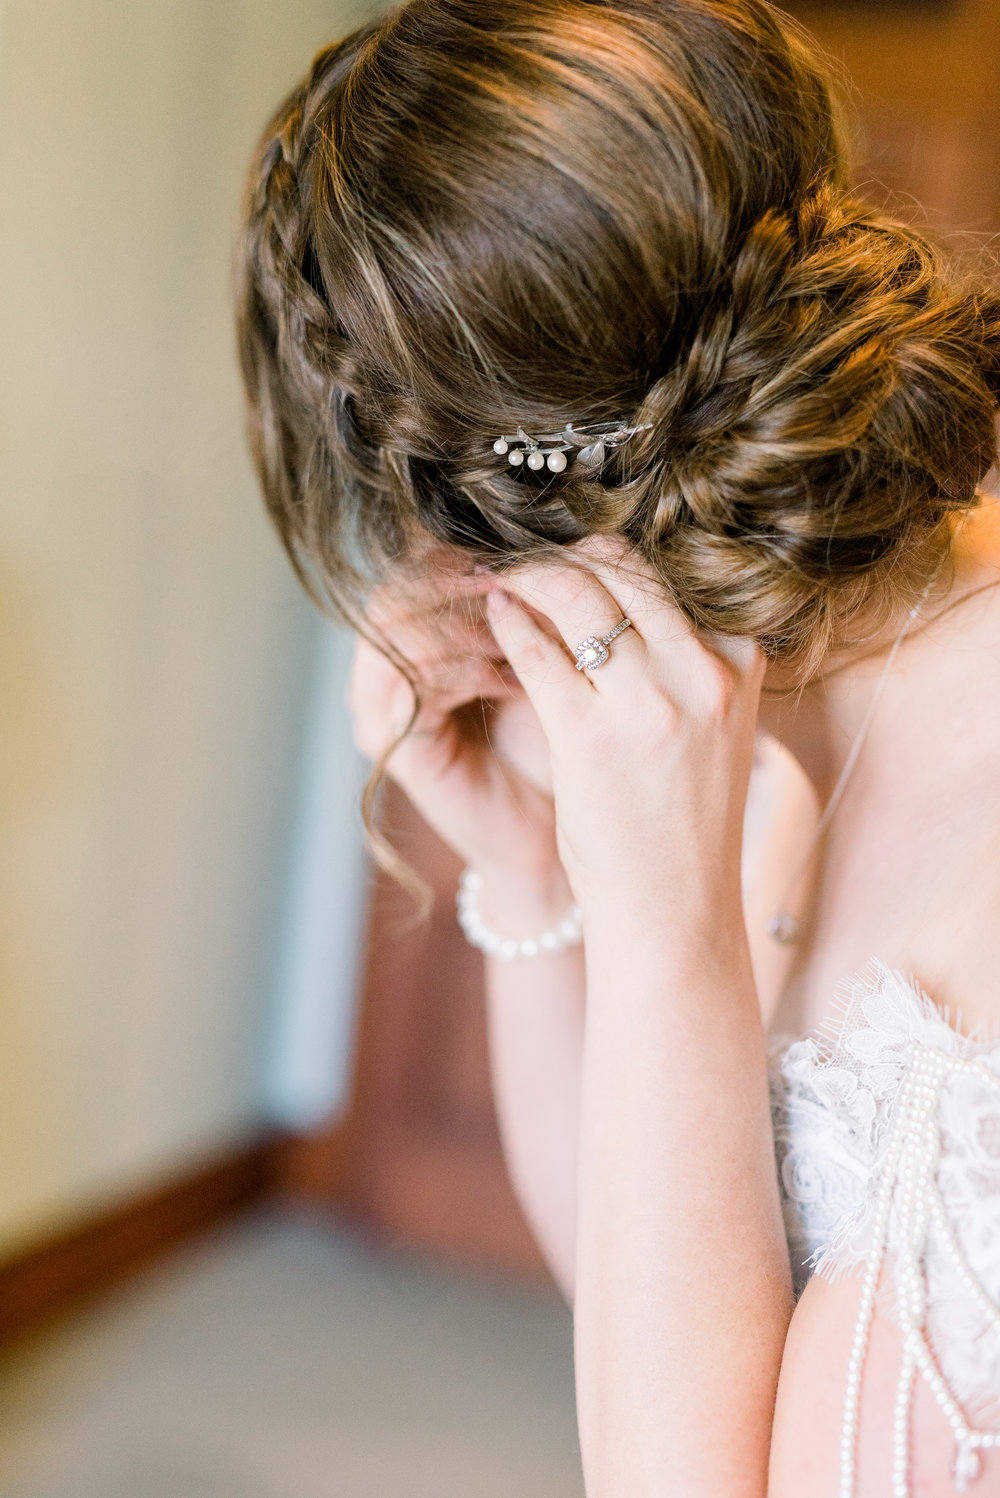 Collection Three - $3450 - 8 hours photographic coverageApproximately 500 edited, high-resolution imagesWedding images supplied on our custom USBOnline gallery to share with friends and family